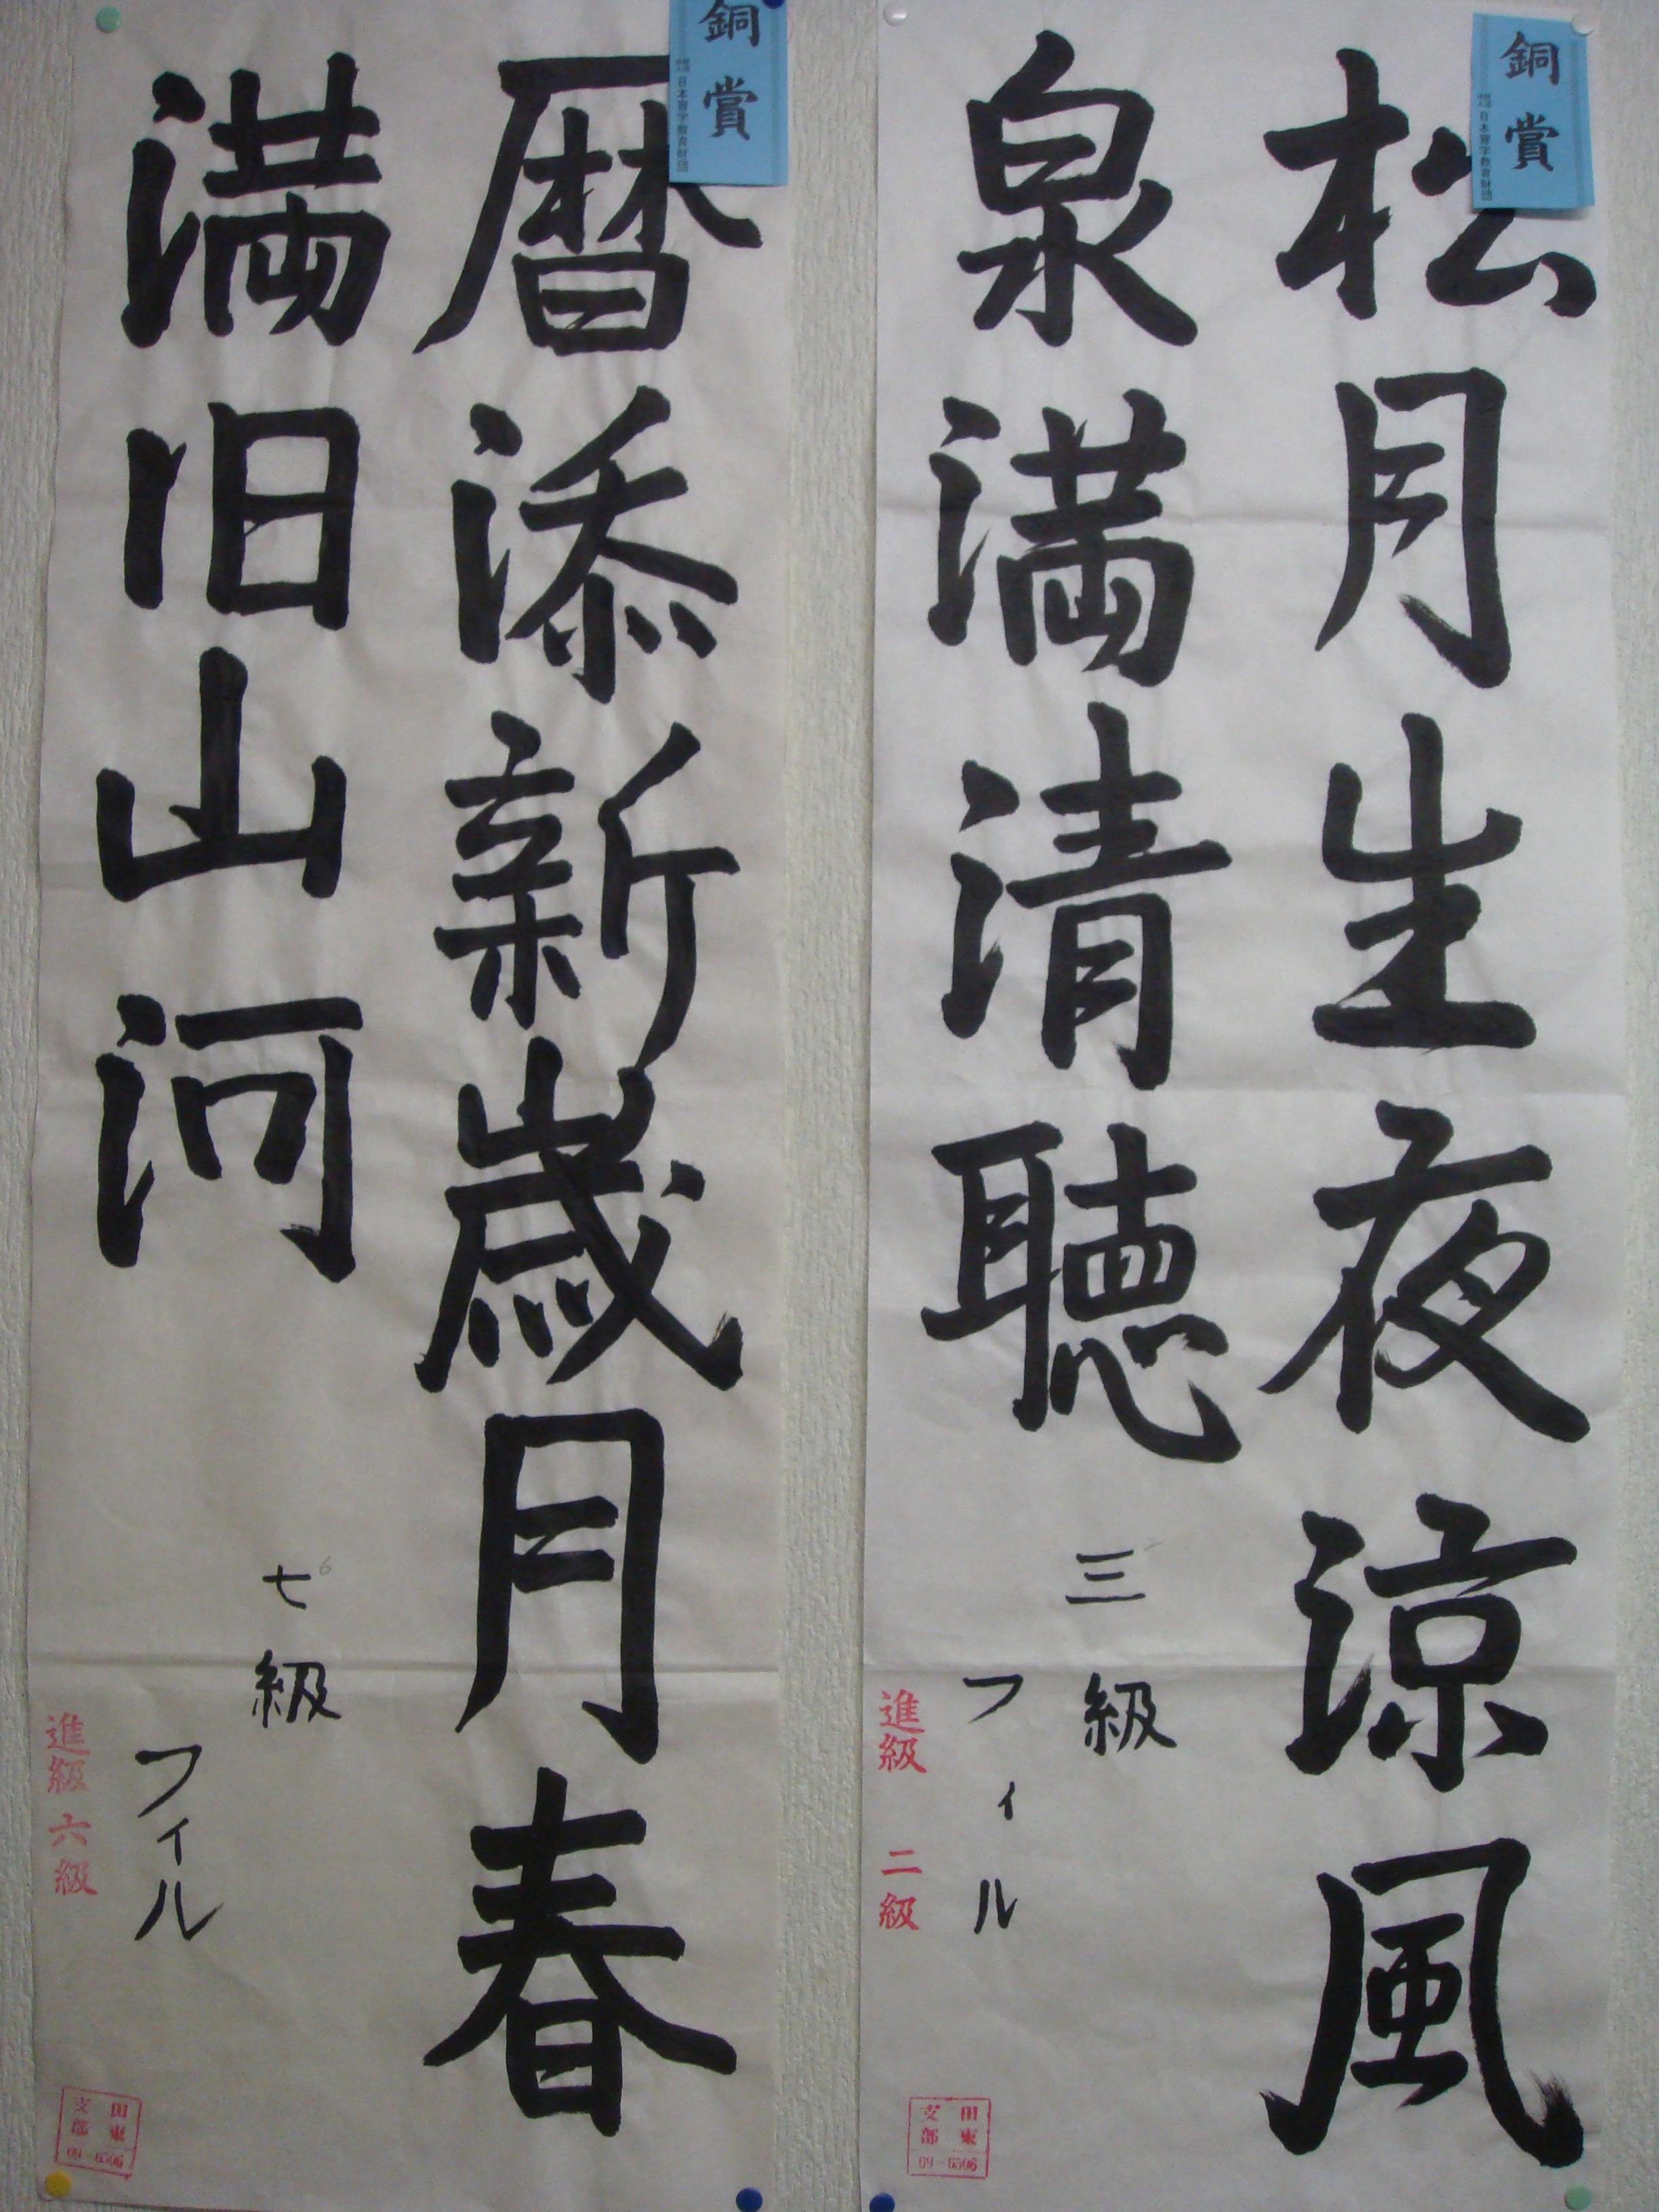 Japanese Calligraphy And Meaning